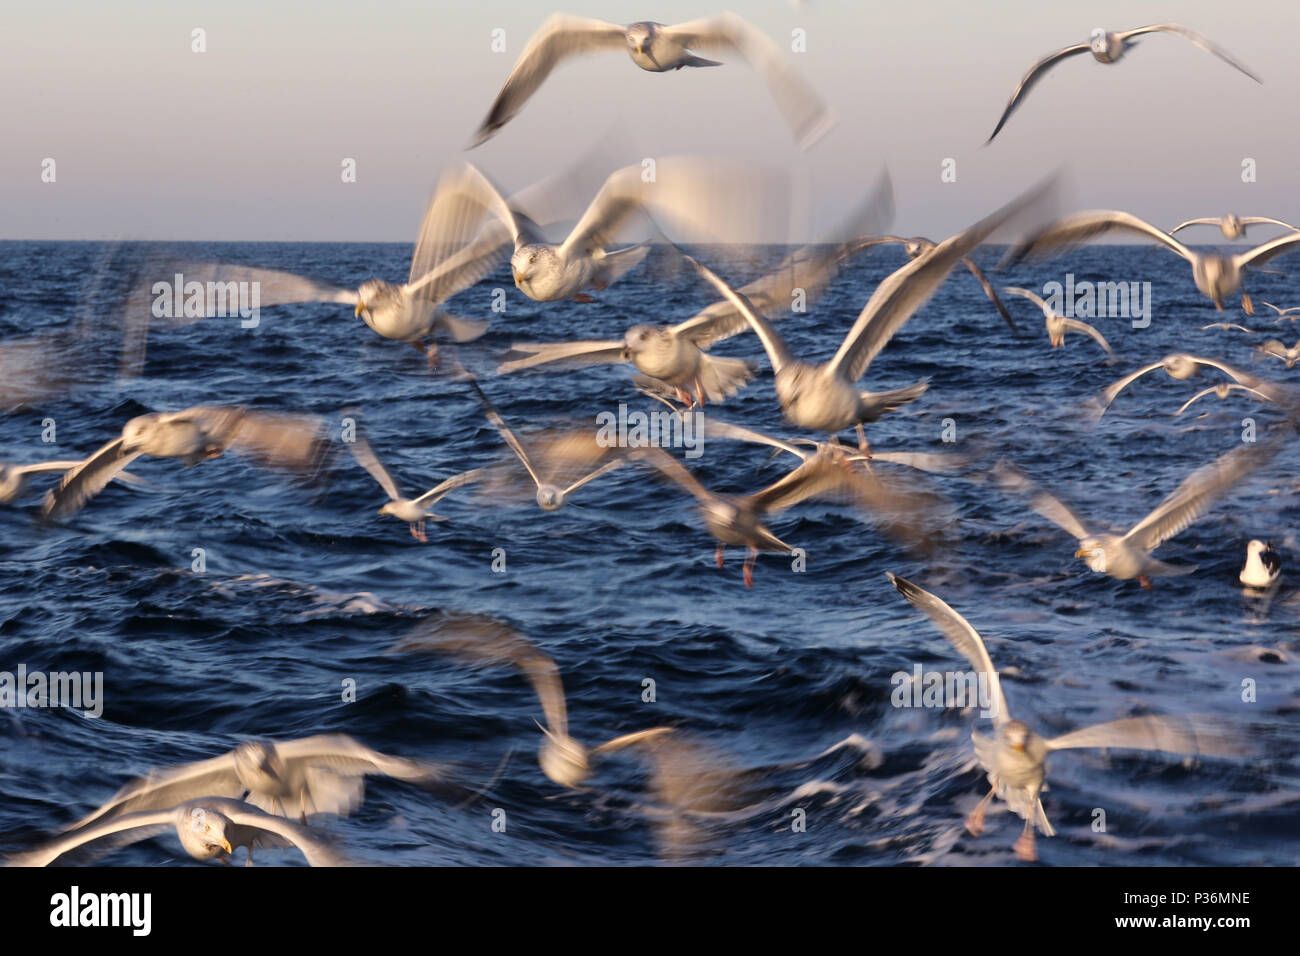 Wismar, Germany, Moewen in flight over the Baltic Sea - Stock Image